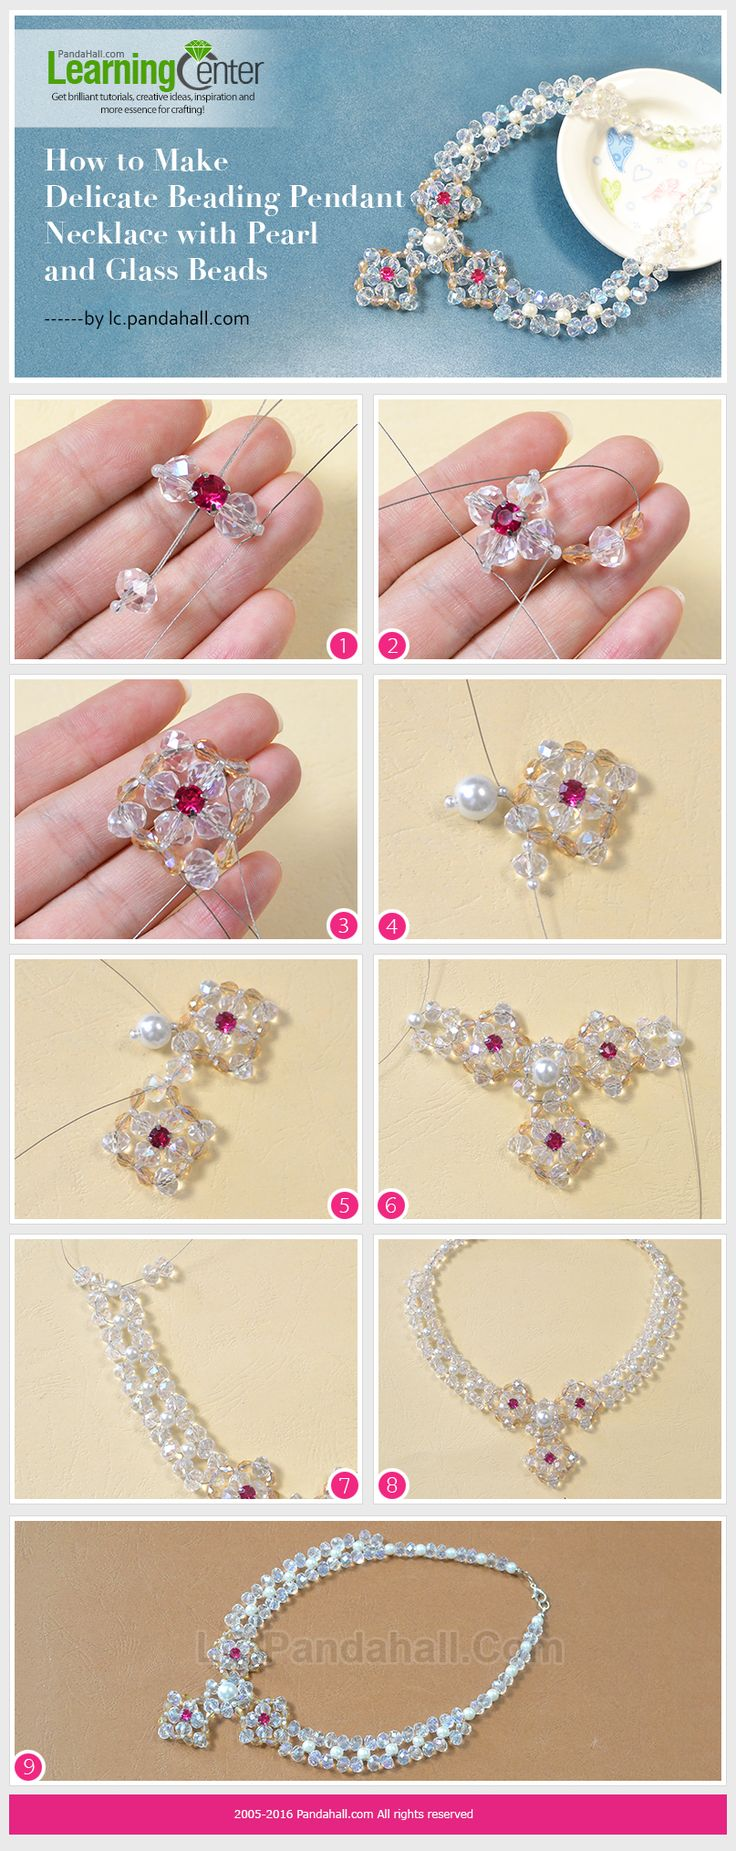 facebook beads beaded diy images pin tumblr for and heart photos pictures pinterest twitter